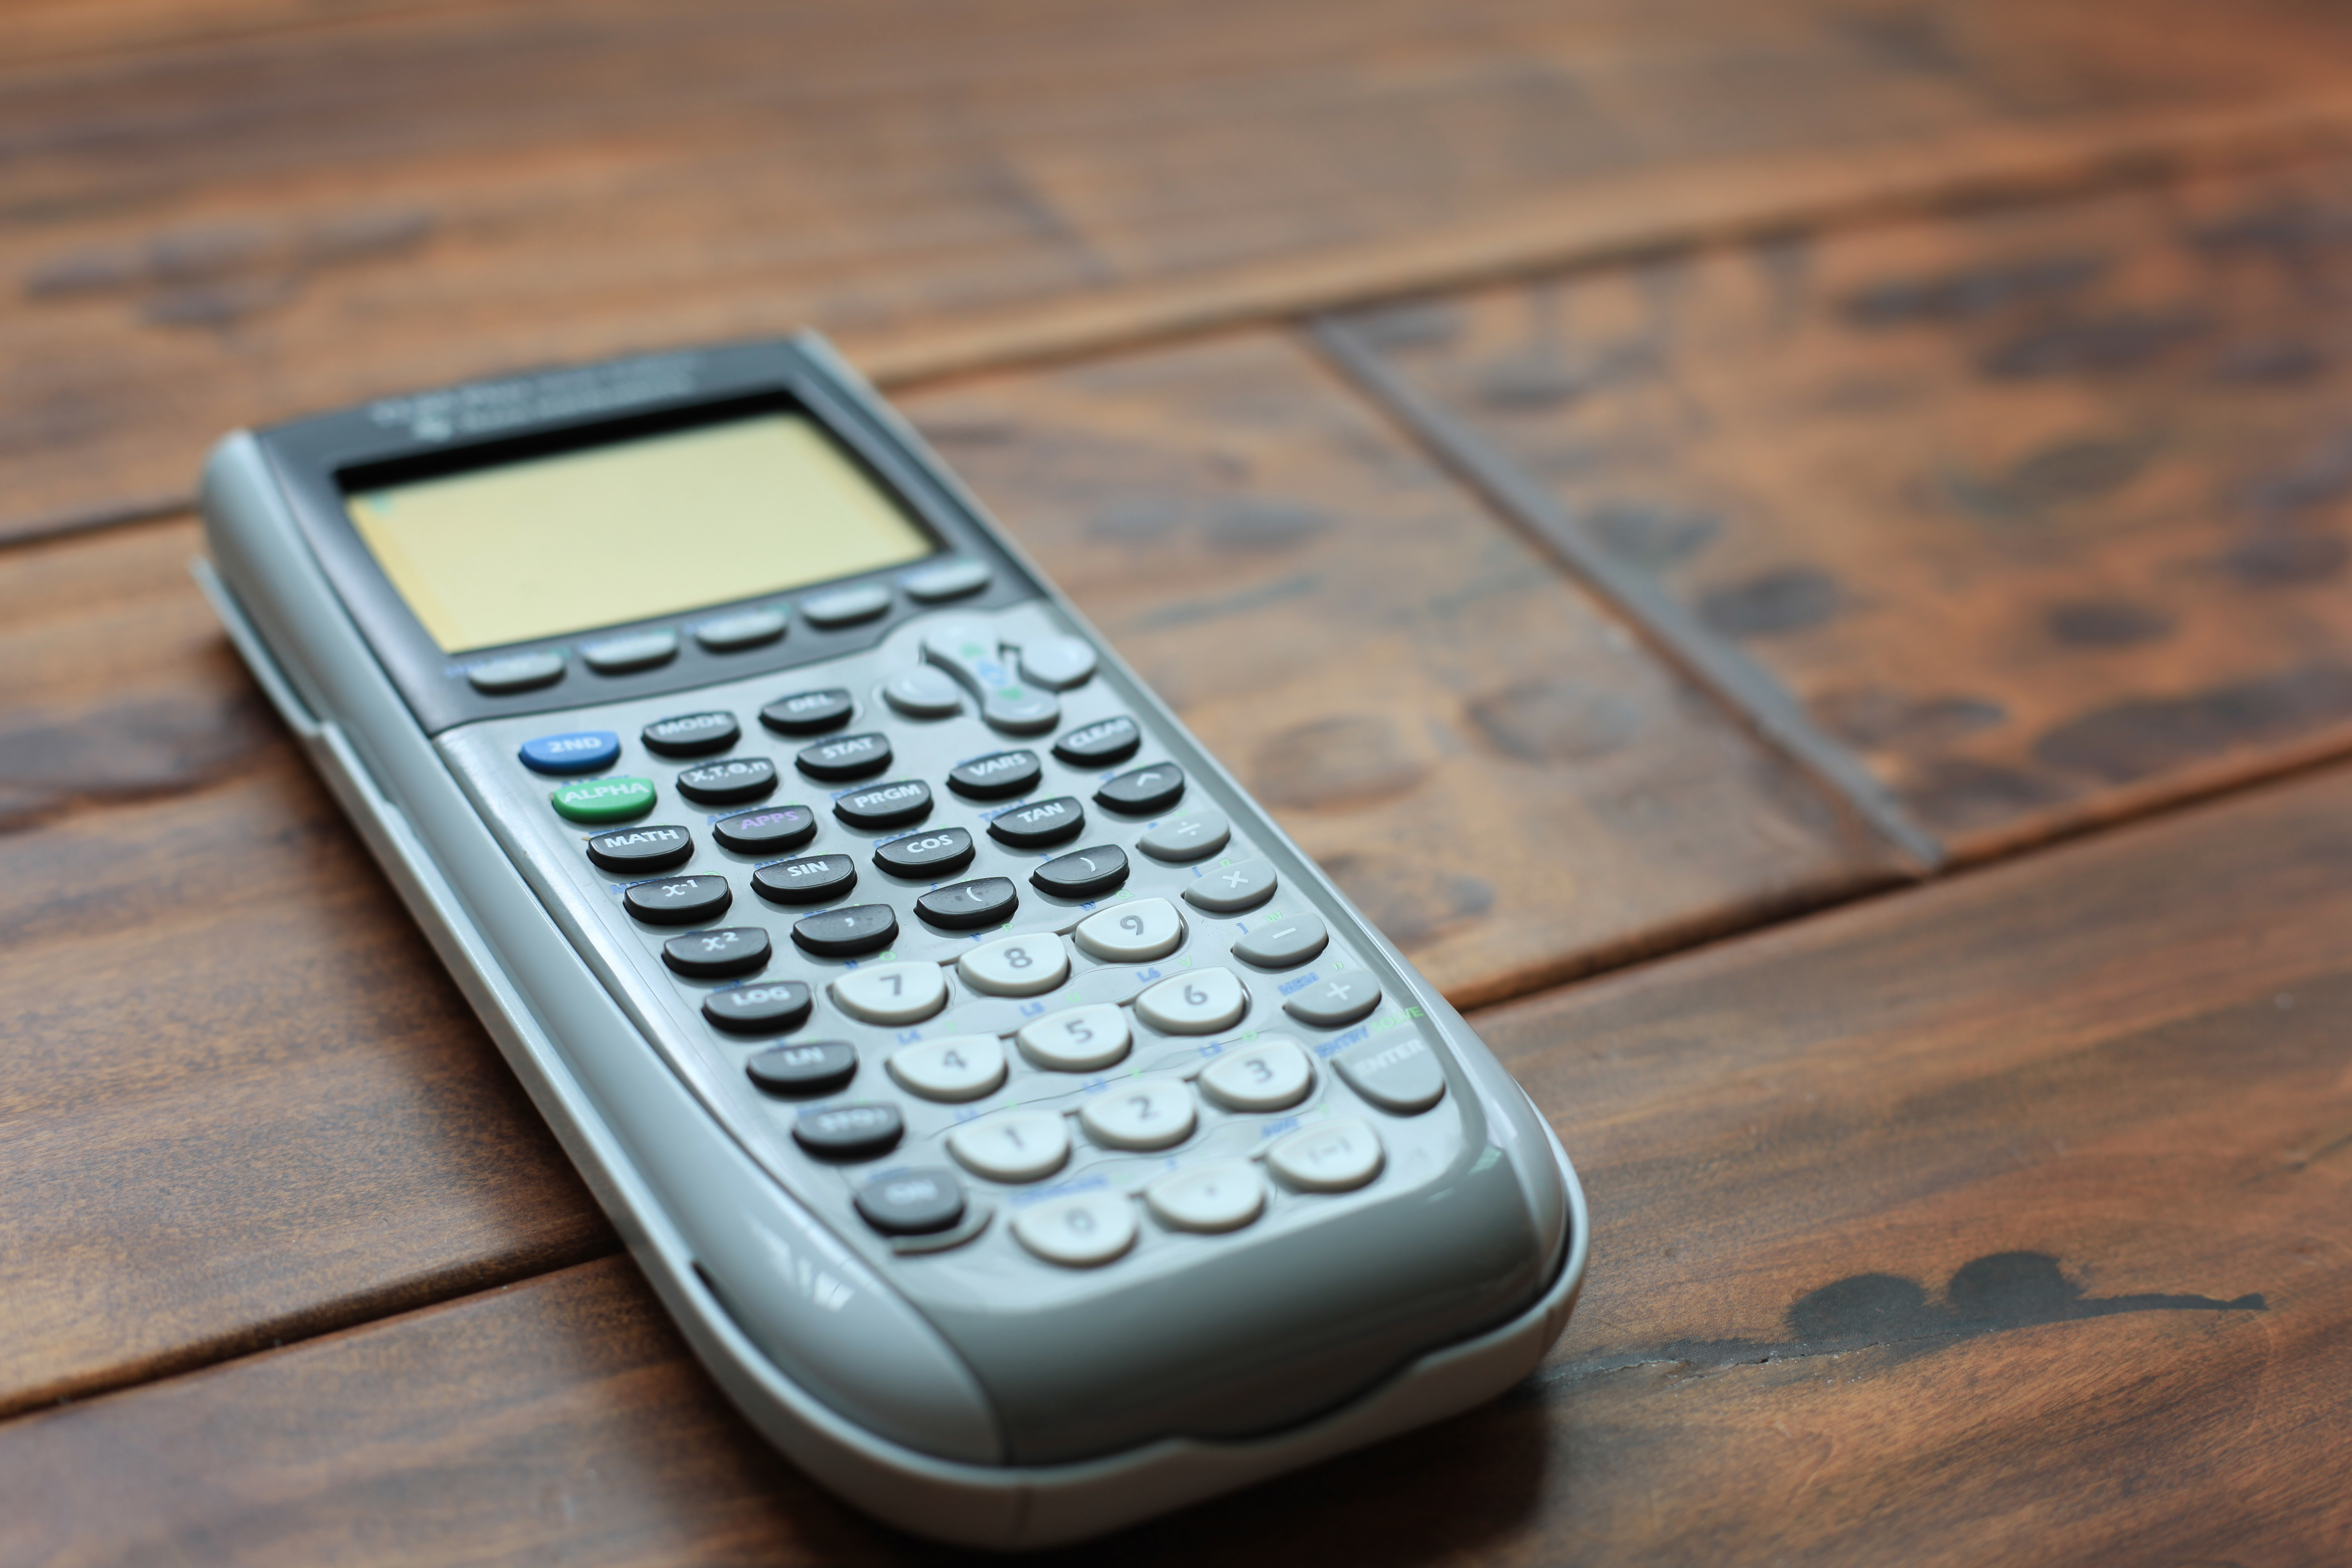 How To Find P Values Using A Texas Instruments Ti83 Calculator  Sciencing